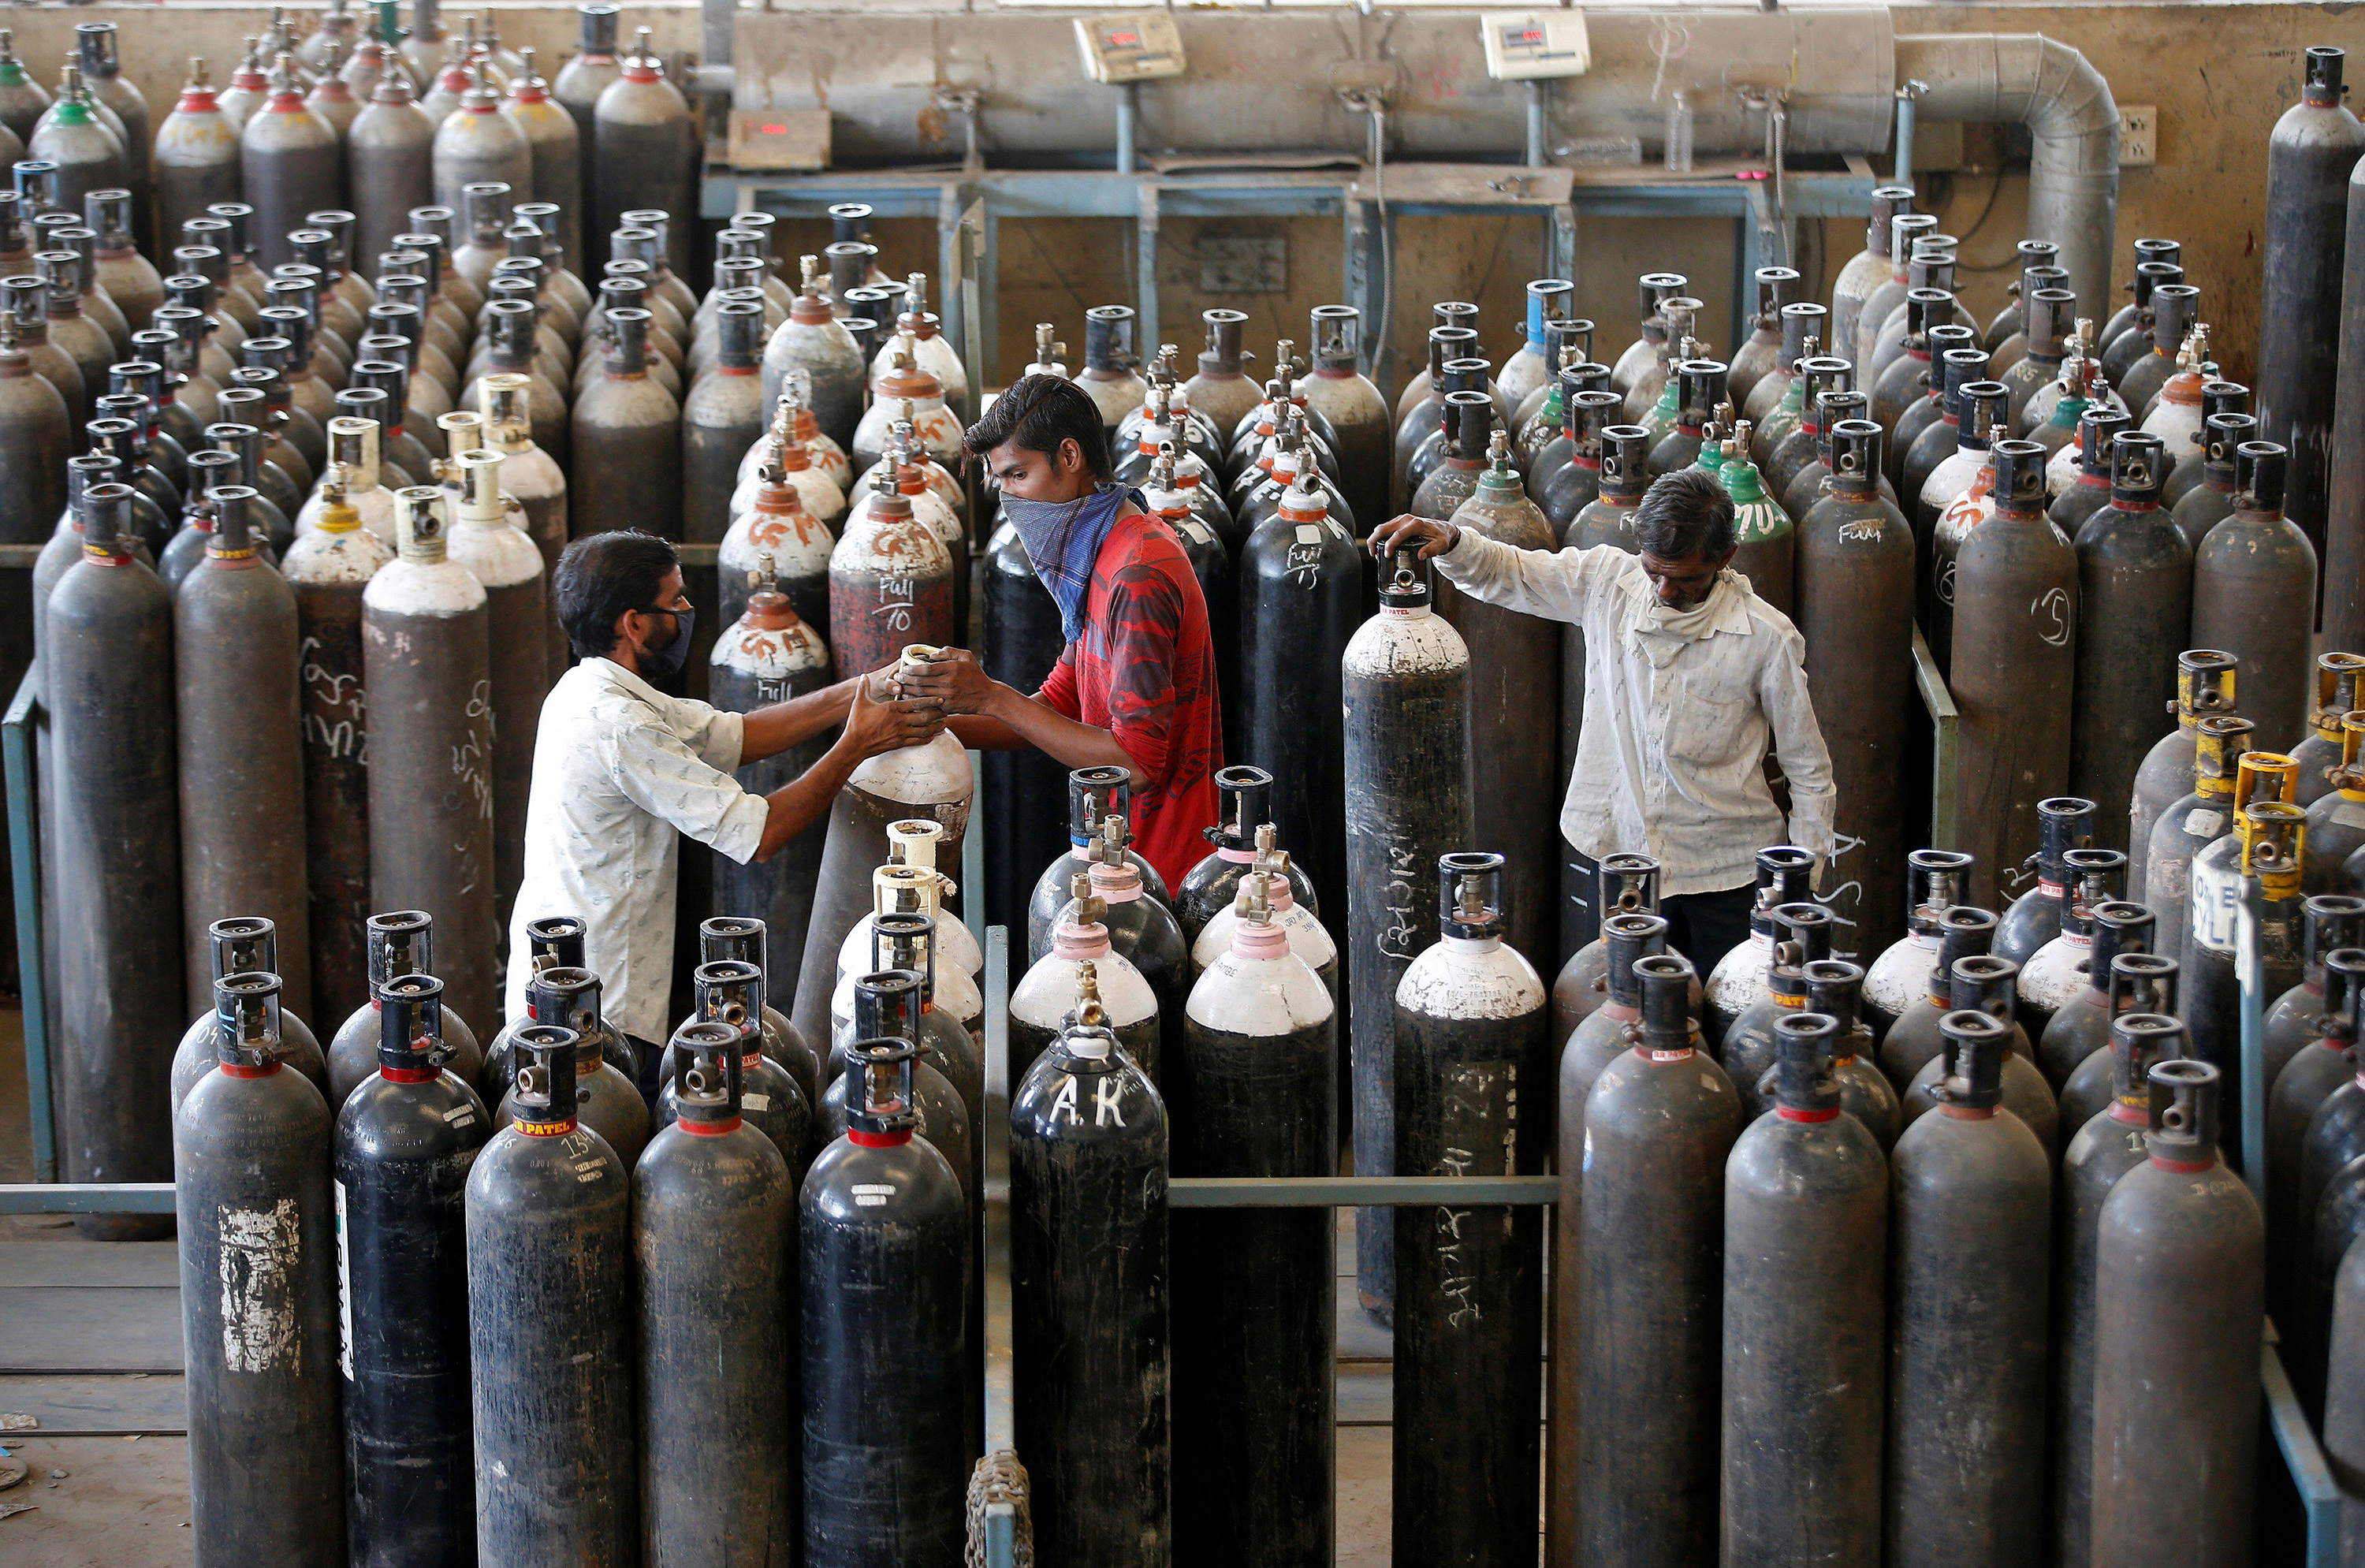 refilling oxygen cylinders